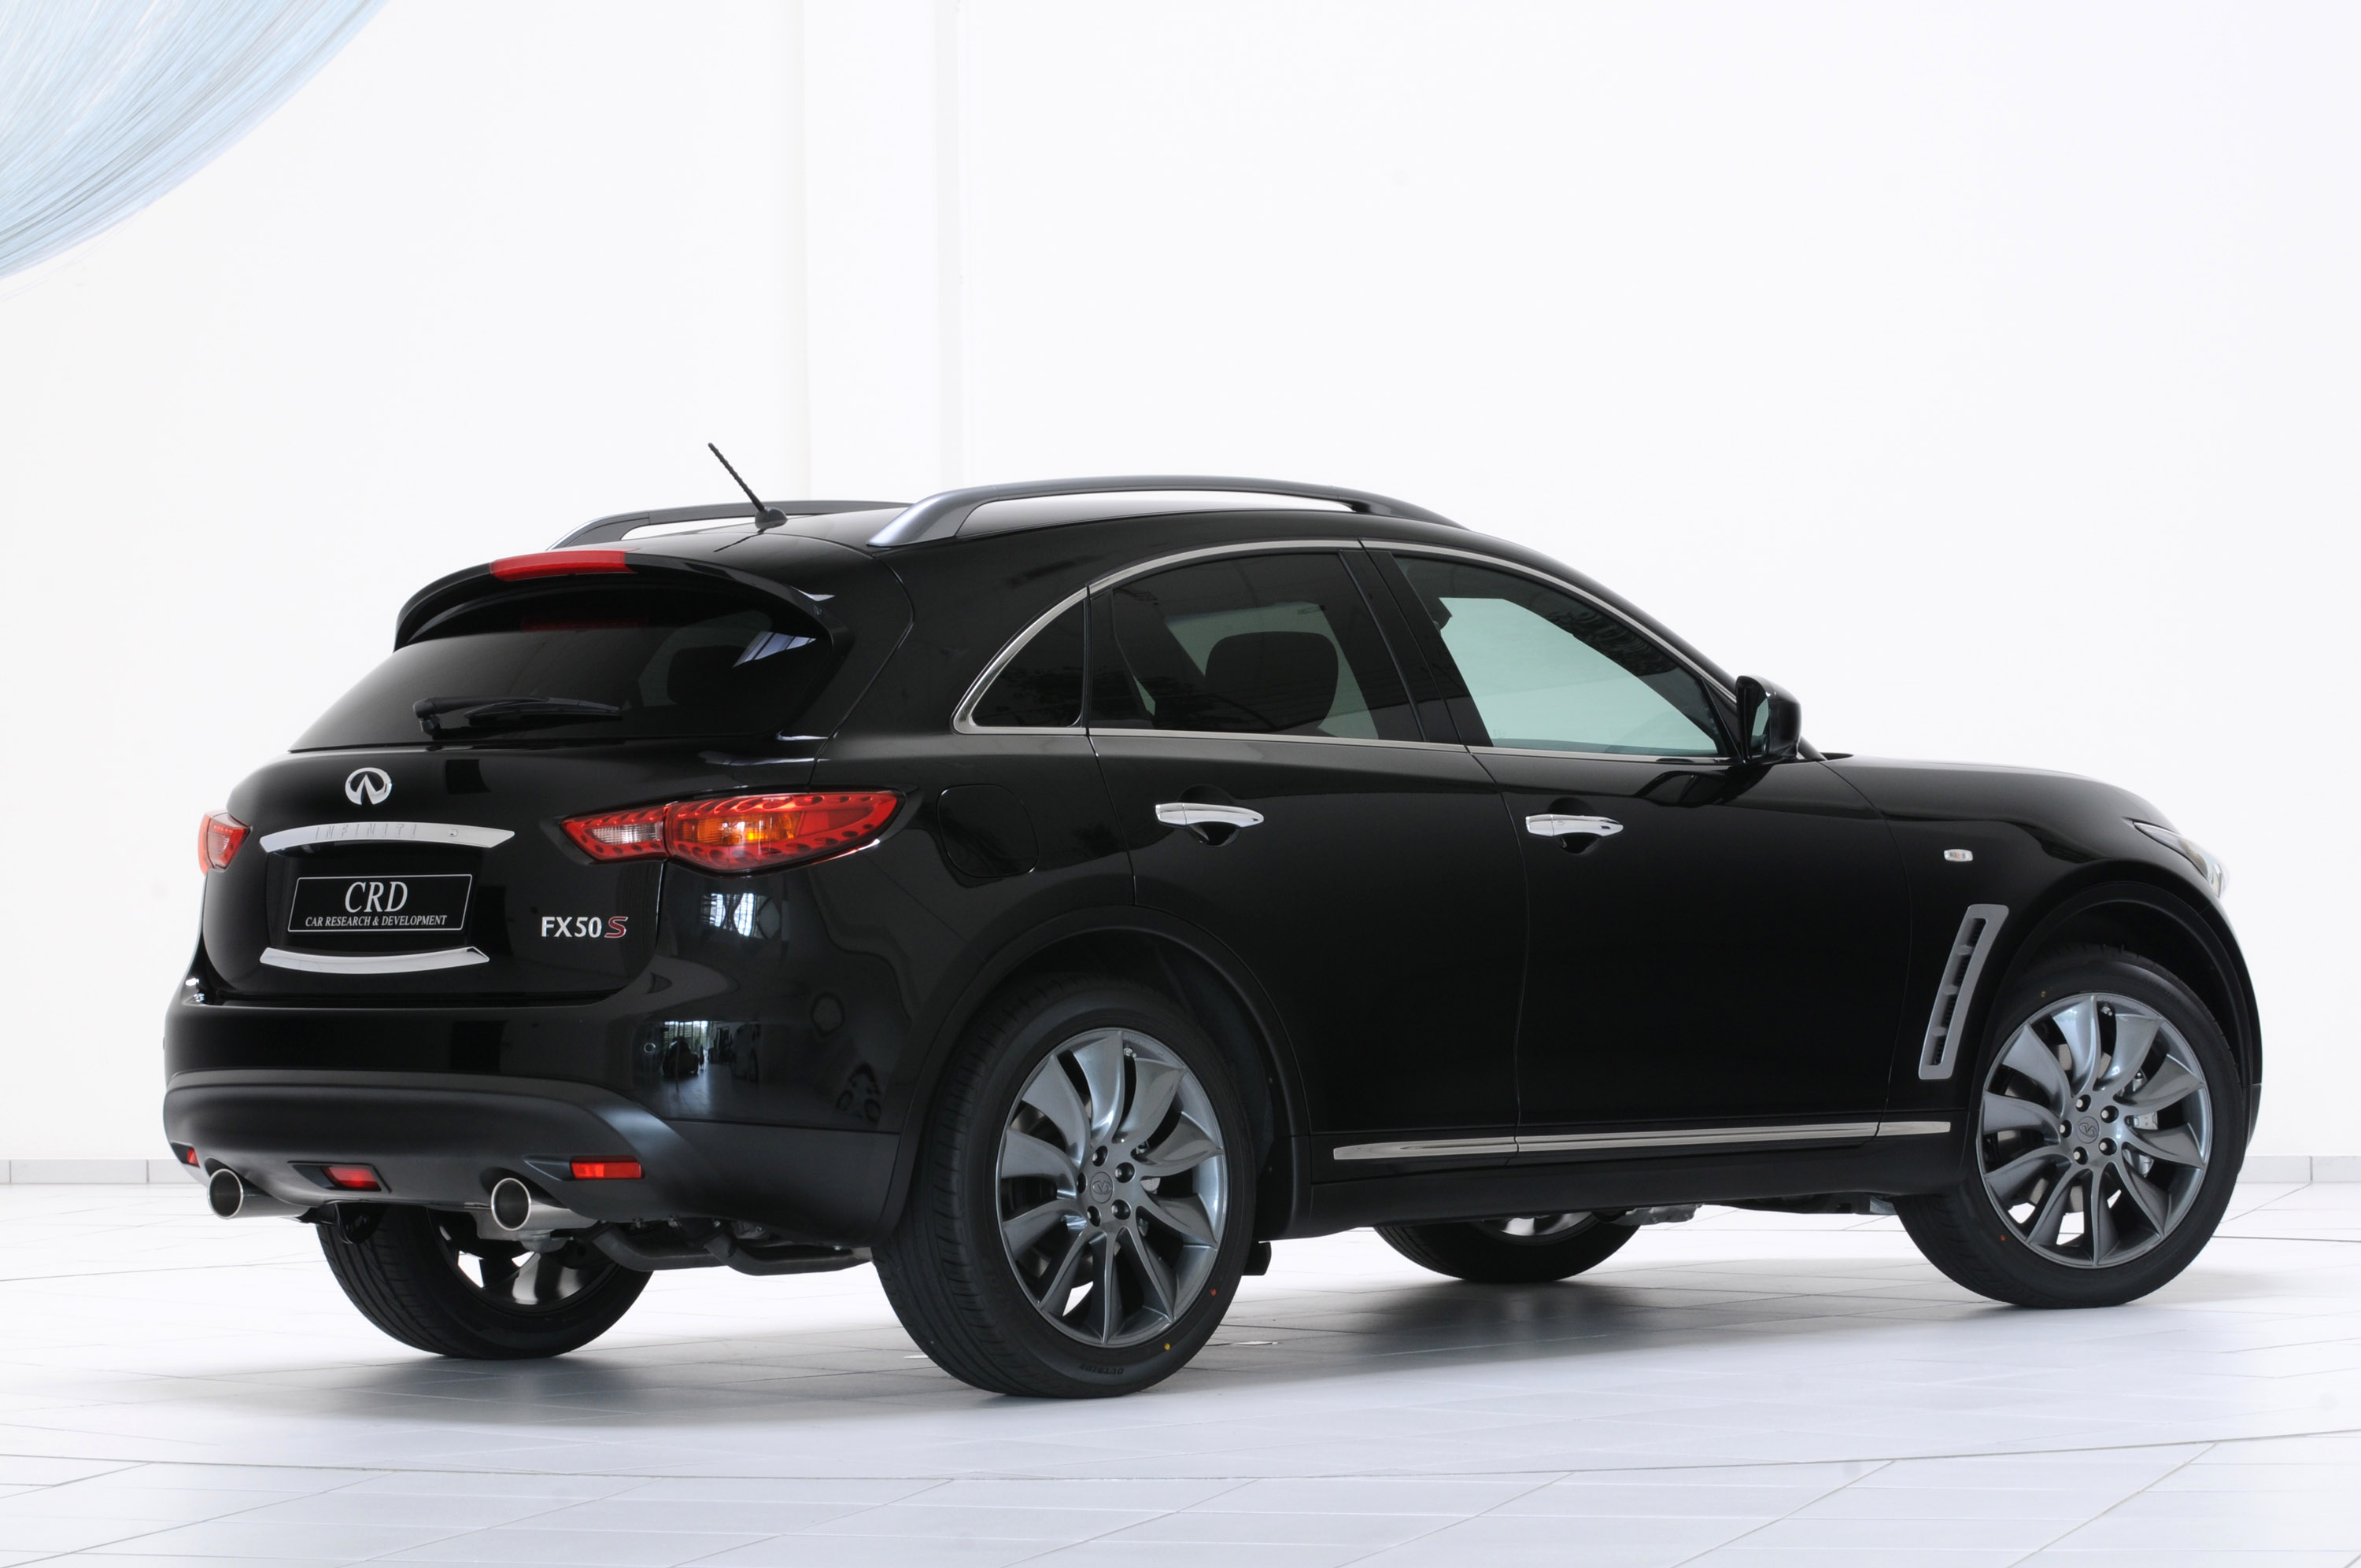 International Vehicle Importers >> CRD Infiniti FX Concept Car